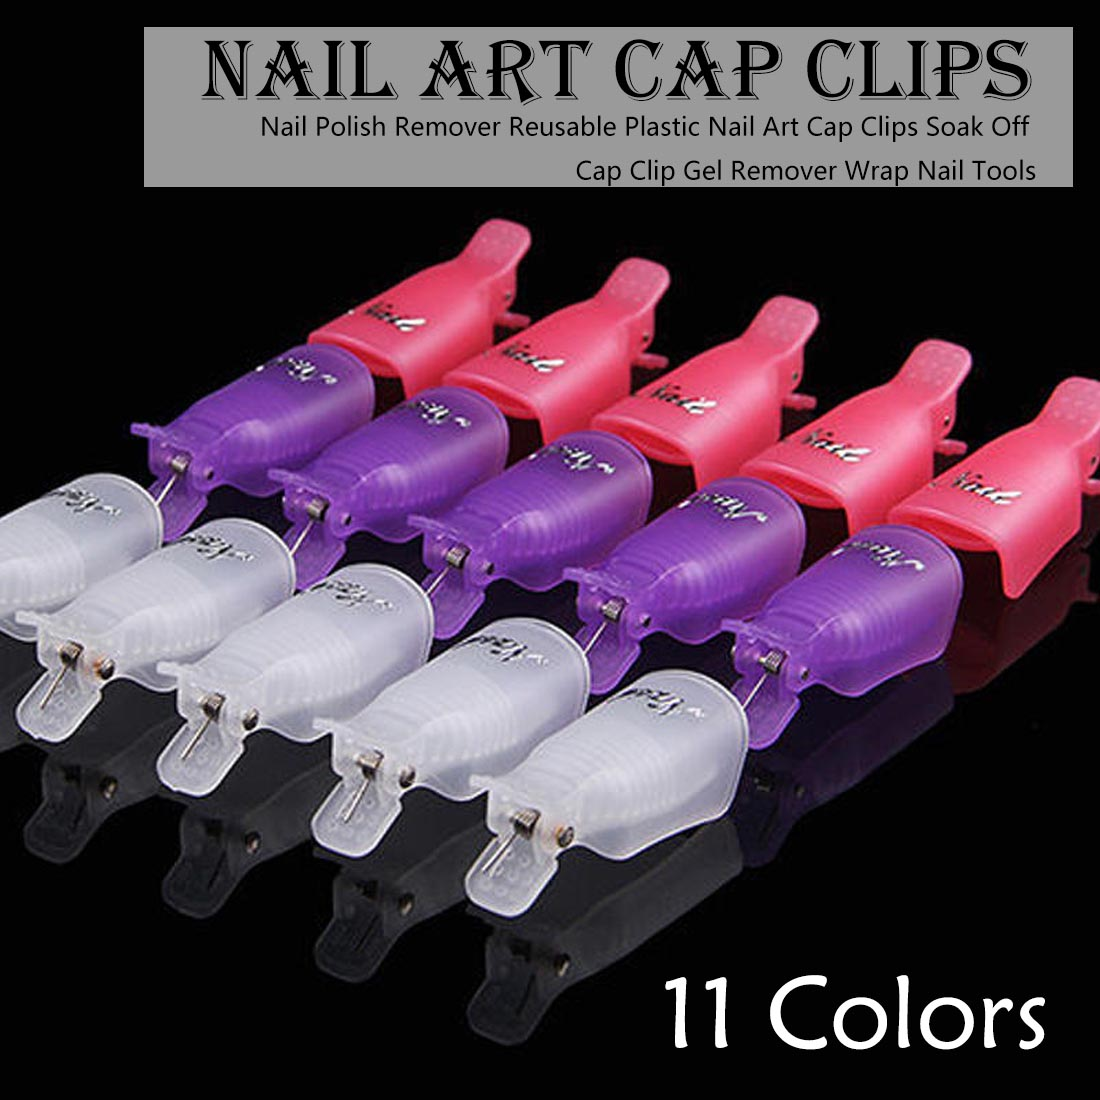 10pcs UV Gel Remover Cap Clips for Gel Varnish Degreaser for Nails Manicure Clamps Plastic Acrylic Nail Art Soak Off Clip Cap-in Nail Polish Remover from Beauty & Health